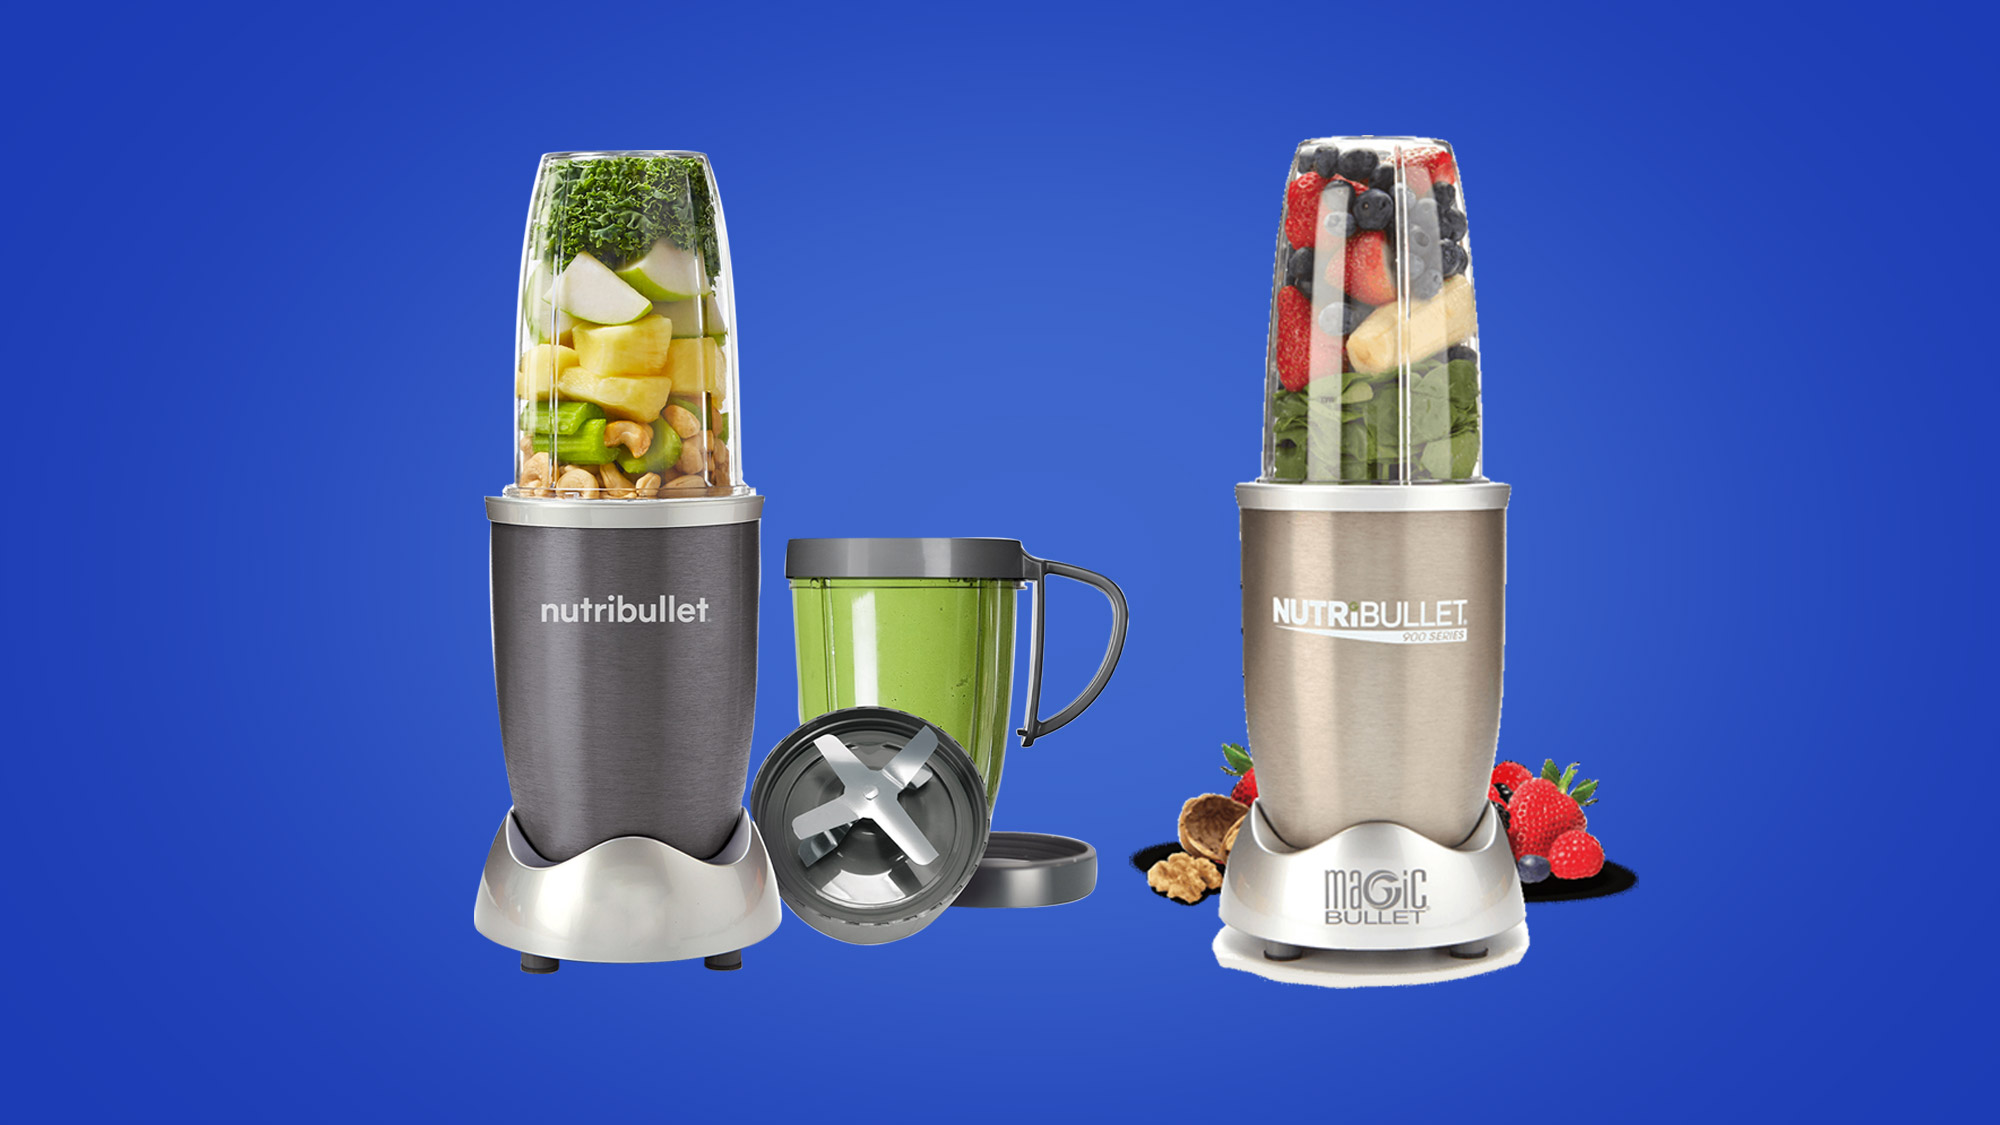 cheapest nutribullet 900